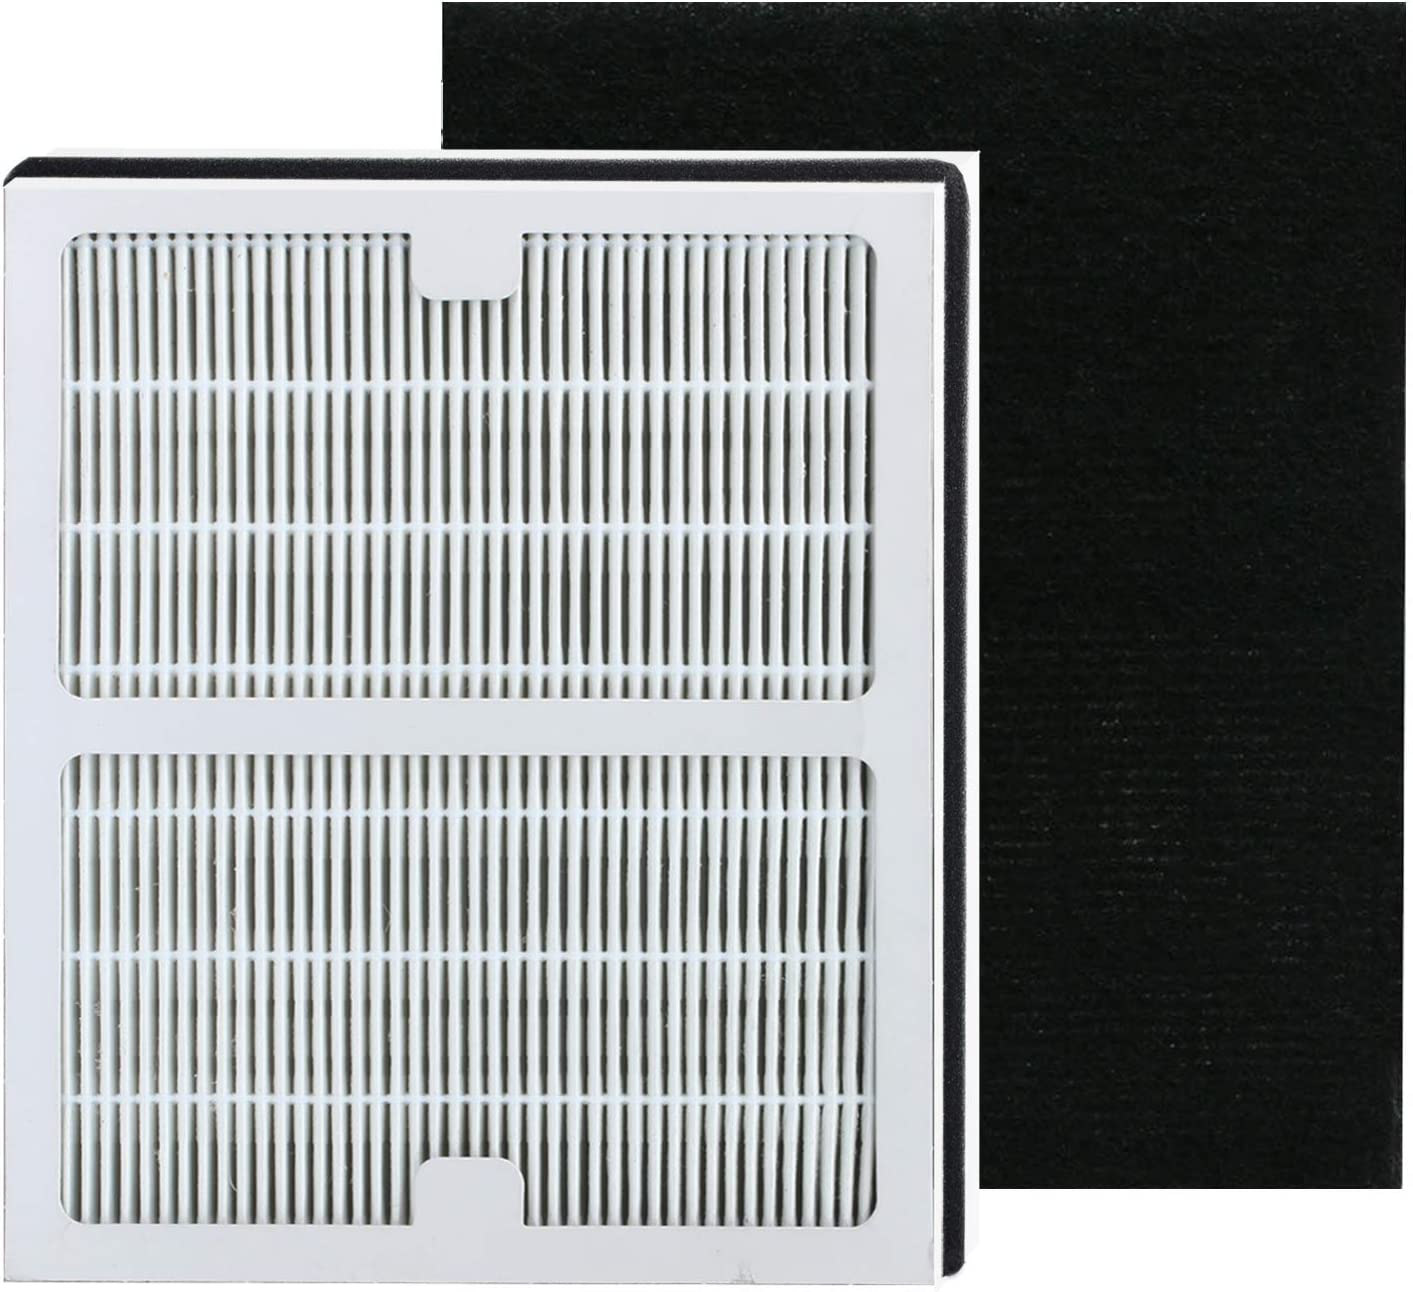 Replacement Idylis A True Hepa Filters, Compatible with Idylis AC-2119, IAPC-10-140, IAP-10-100, IAP-10-150 Model # IAF-H-100A, Includes 1 HEPA & 1 Carbon Filters